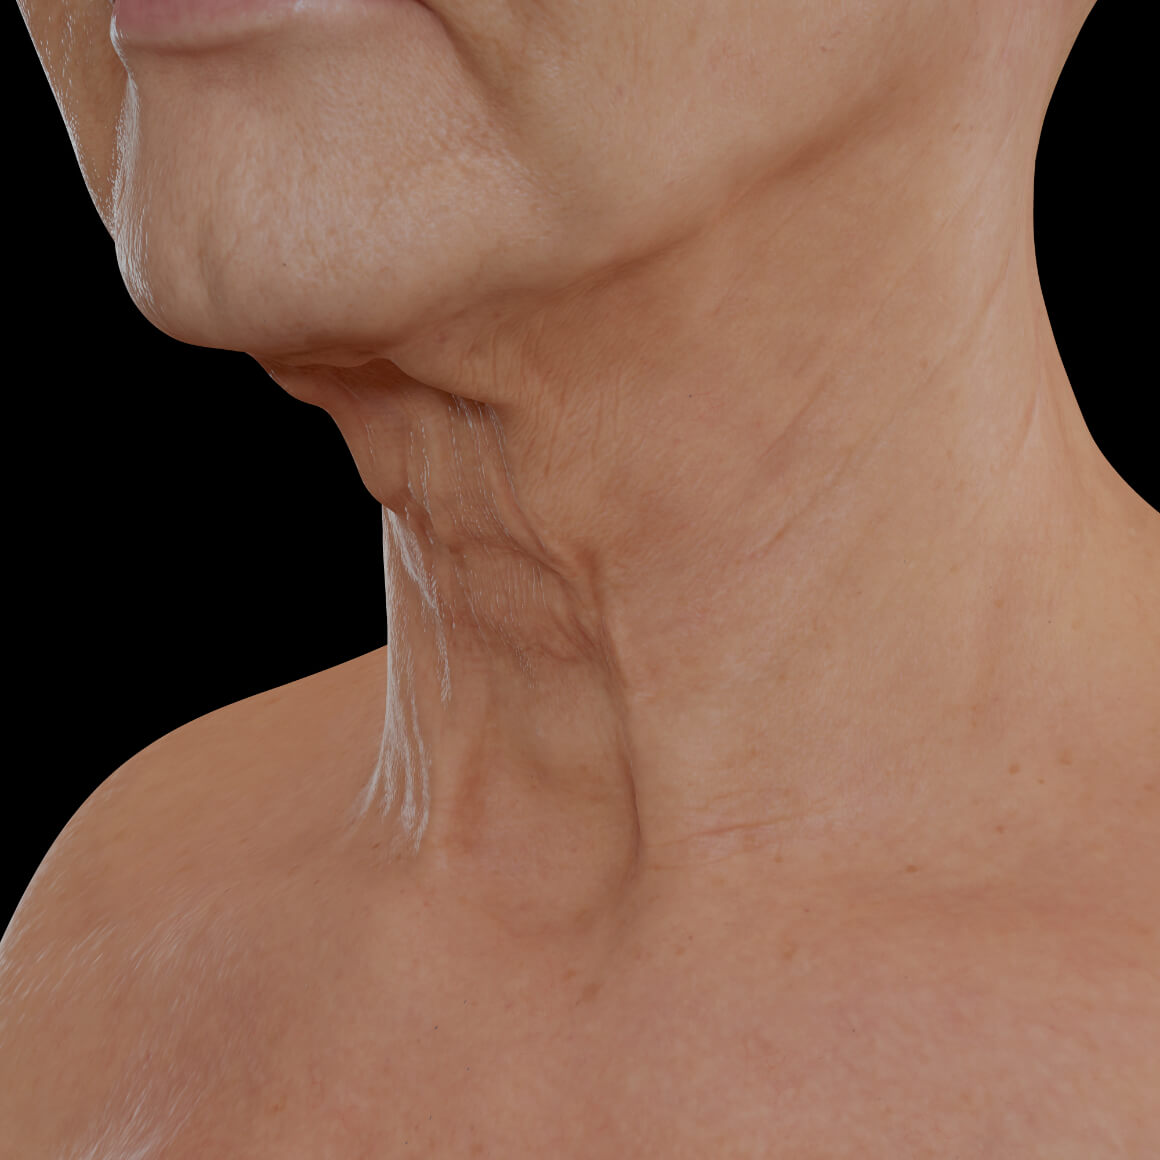 Female patient from Clinique Chloé positioned at an angle showing neck skin laxity